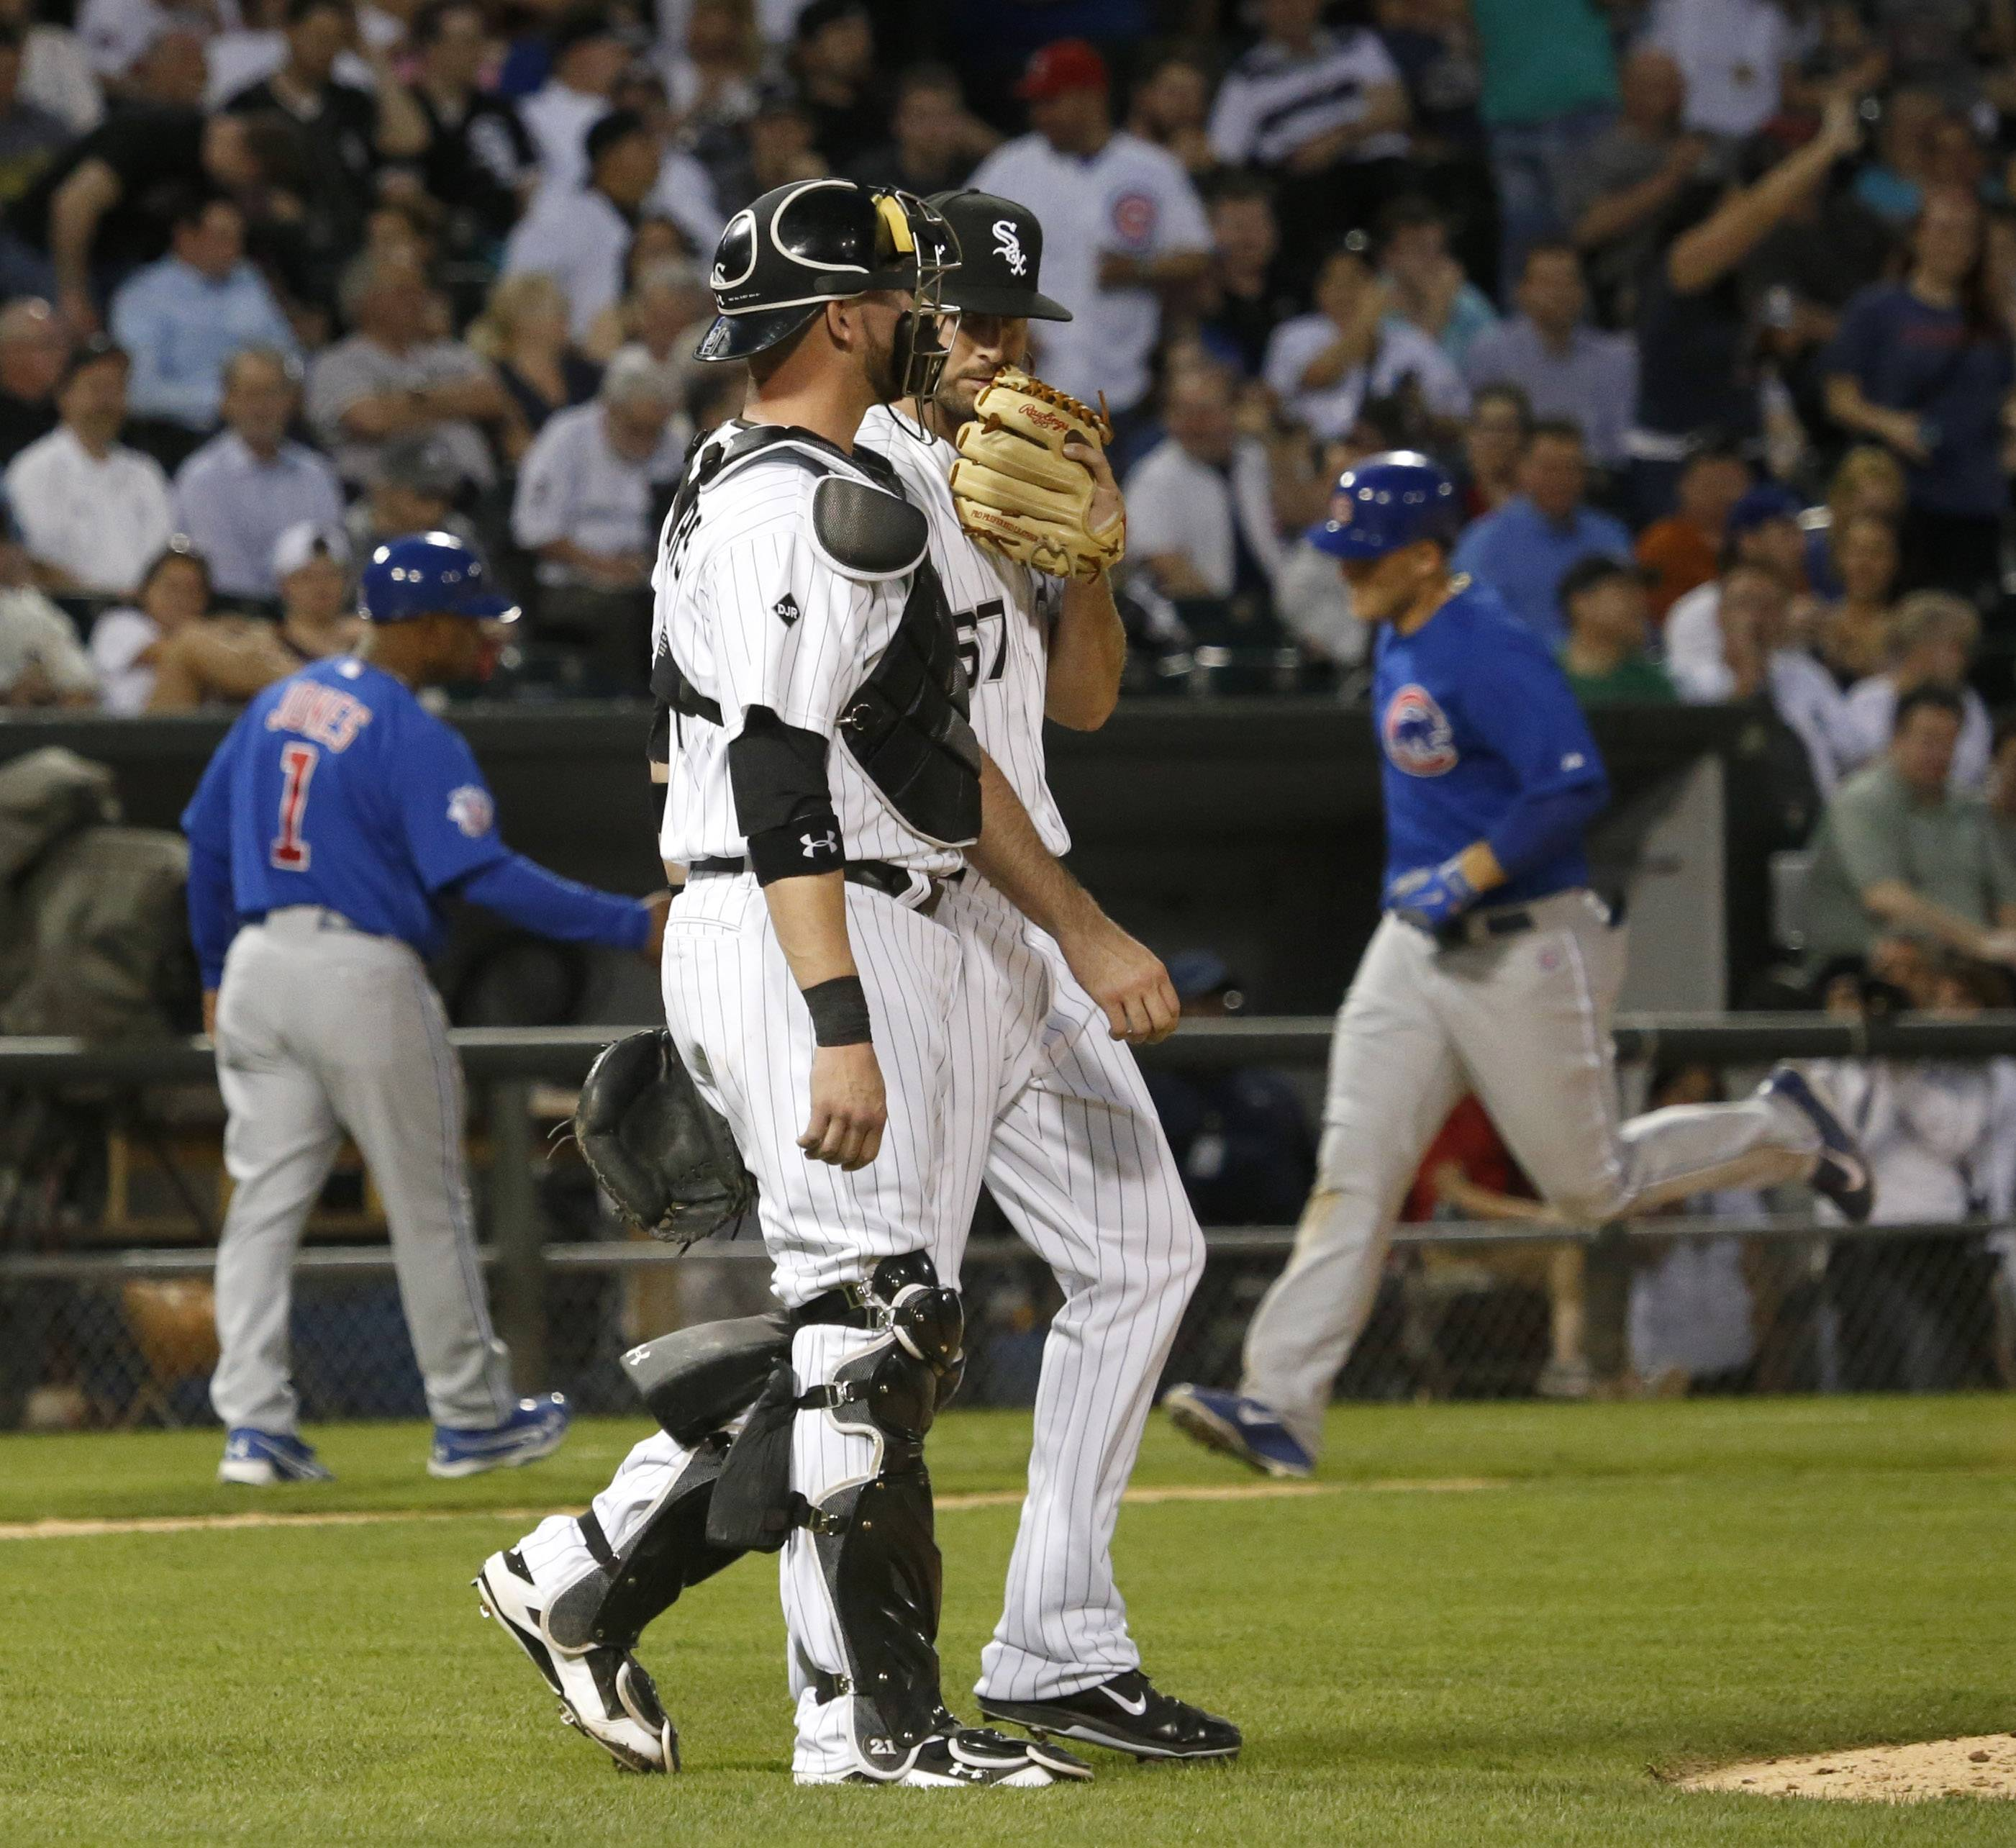 Chicago White Sox starting pitcher Scott Carroll (67) walks back to the mound with catcher Tyler Flowers after giving up a two-run home run to Chicago Cubs' Anthony Rizzo, background right, during the third inning of an interleague baseball game Thursday, May 8, 2014, in Chicago.